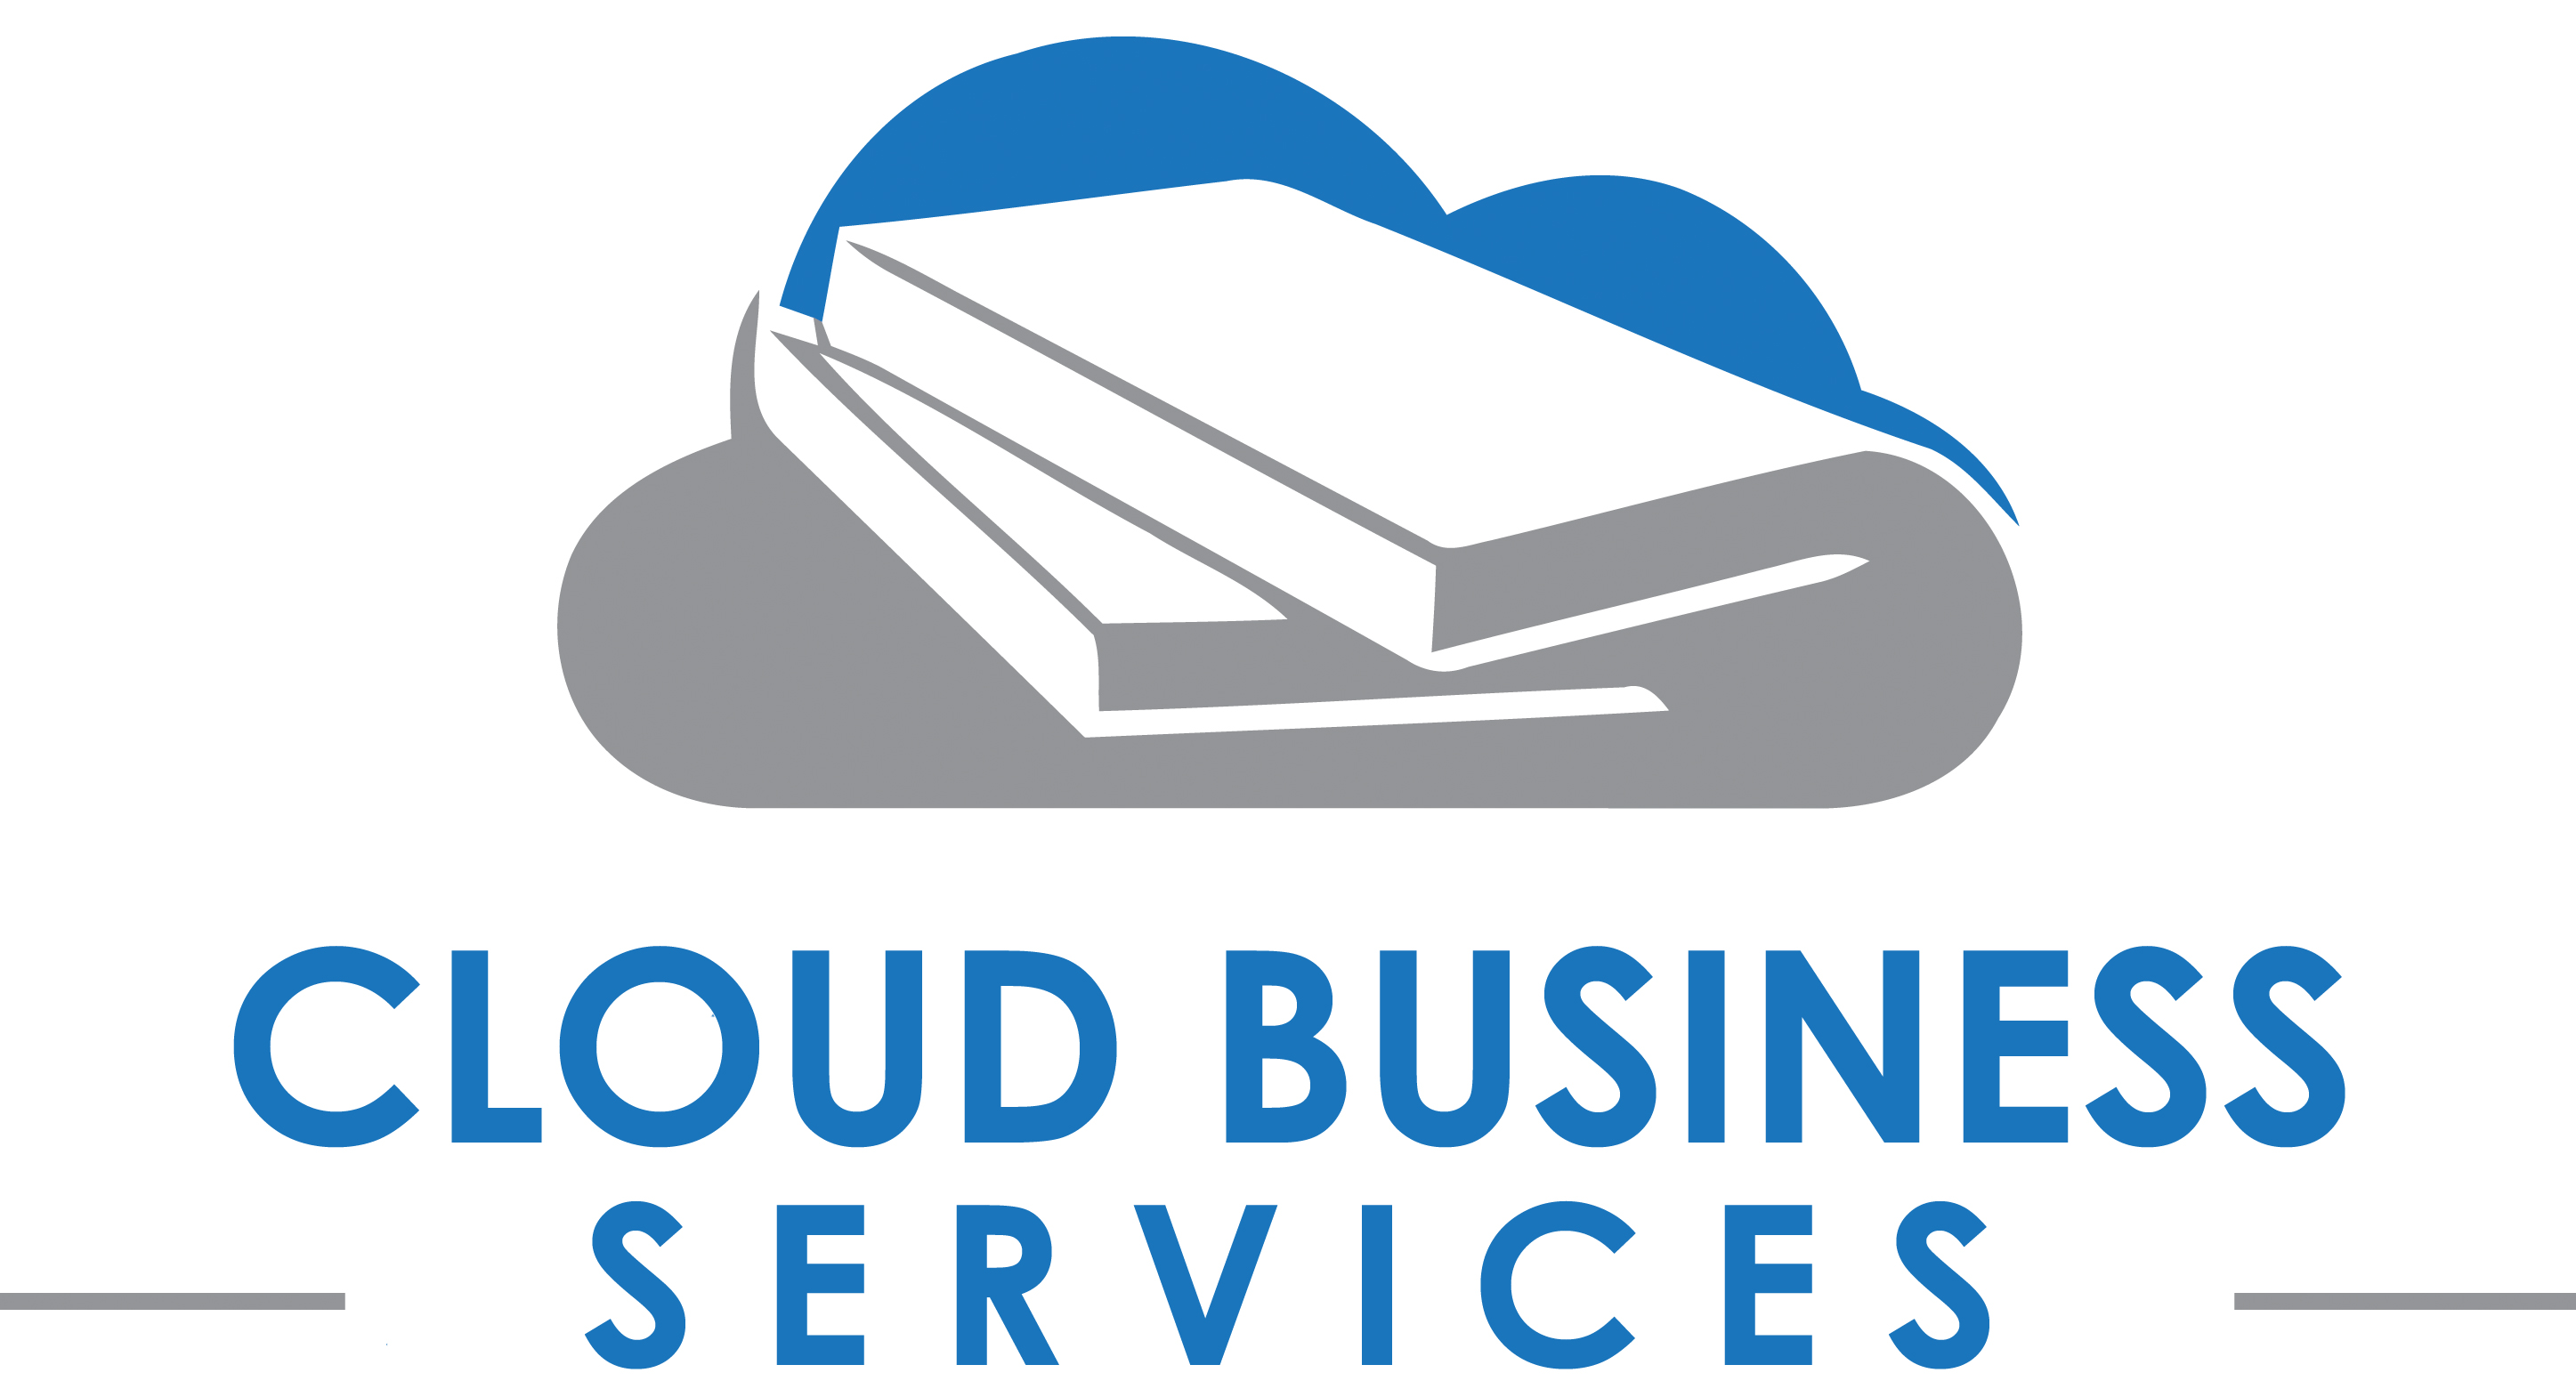 Cloud Business Services